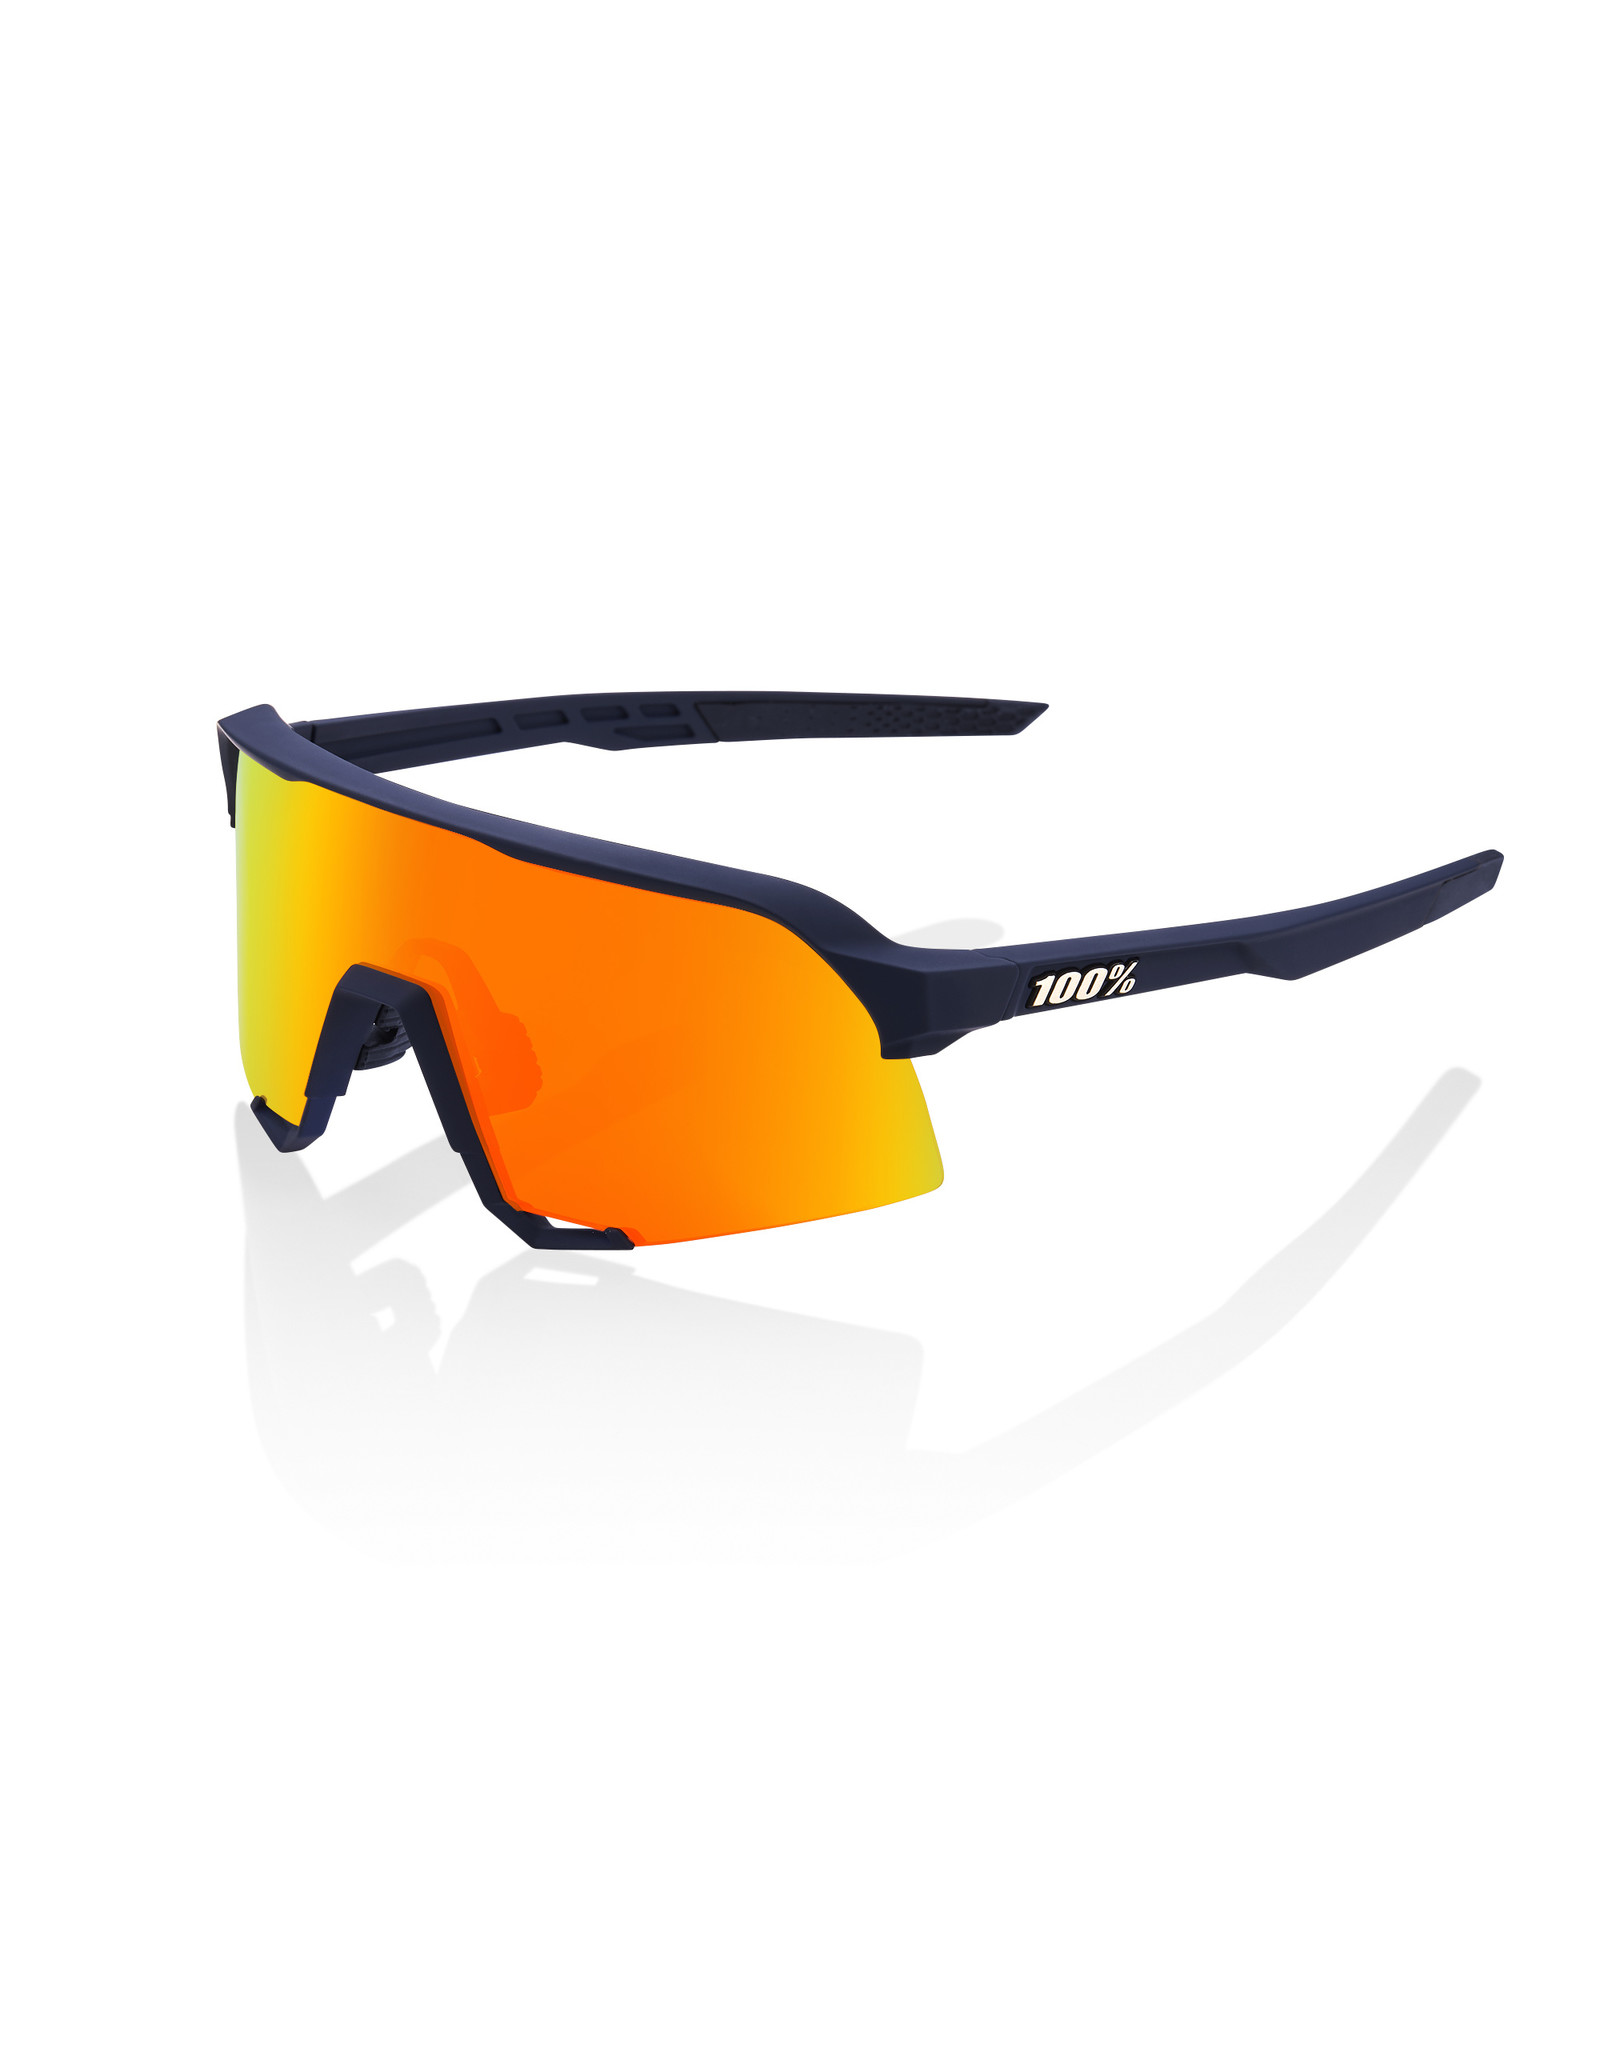 100% 100% SUNGLASSES S3 - SOFT TACT FLUME - HIPER RED MULTILAYER MIRROR LENS